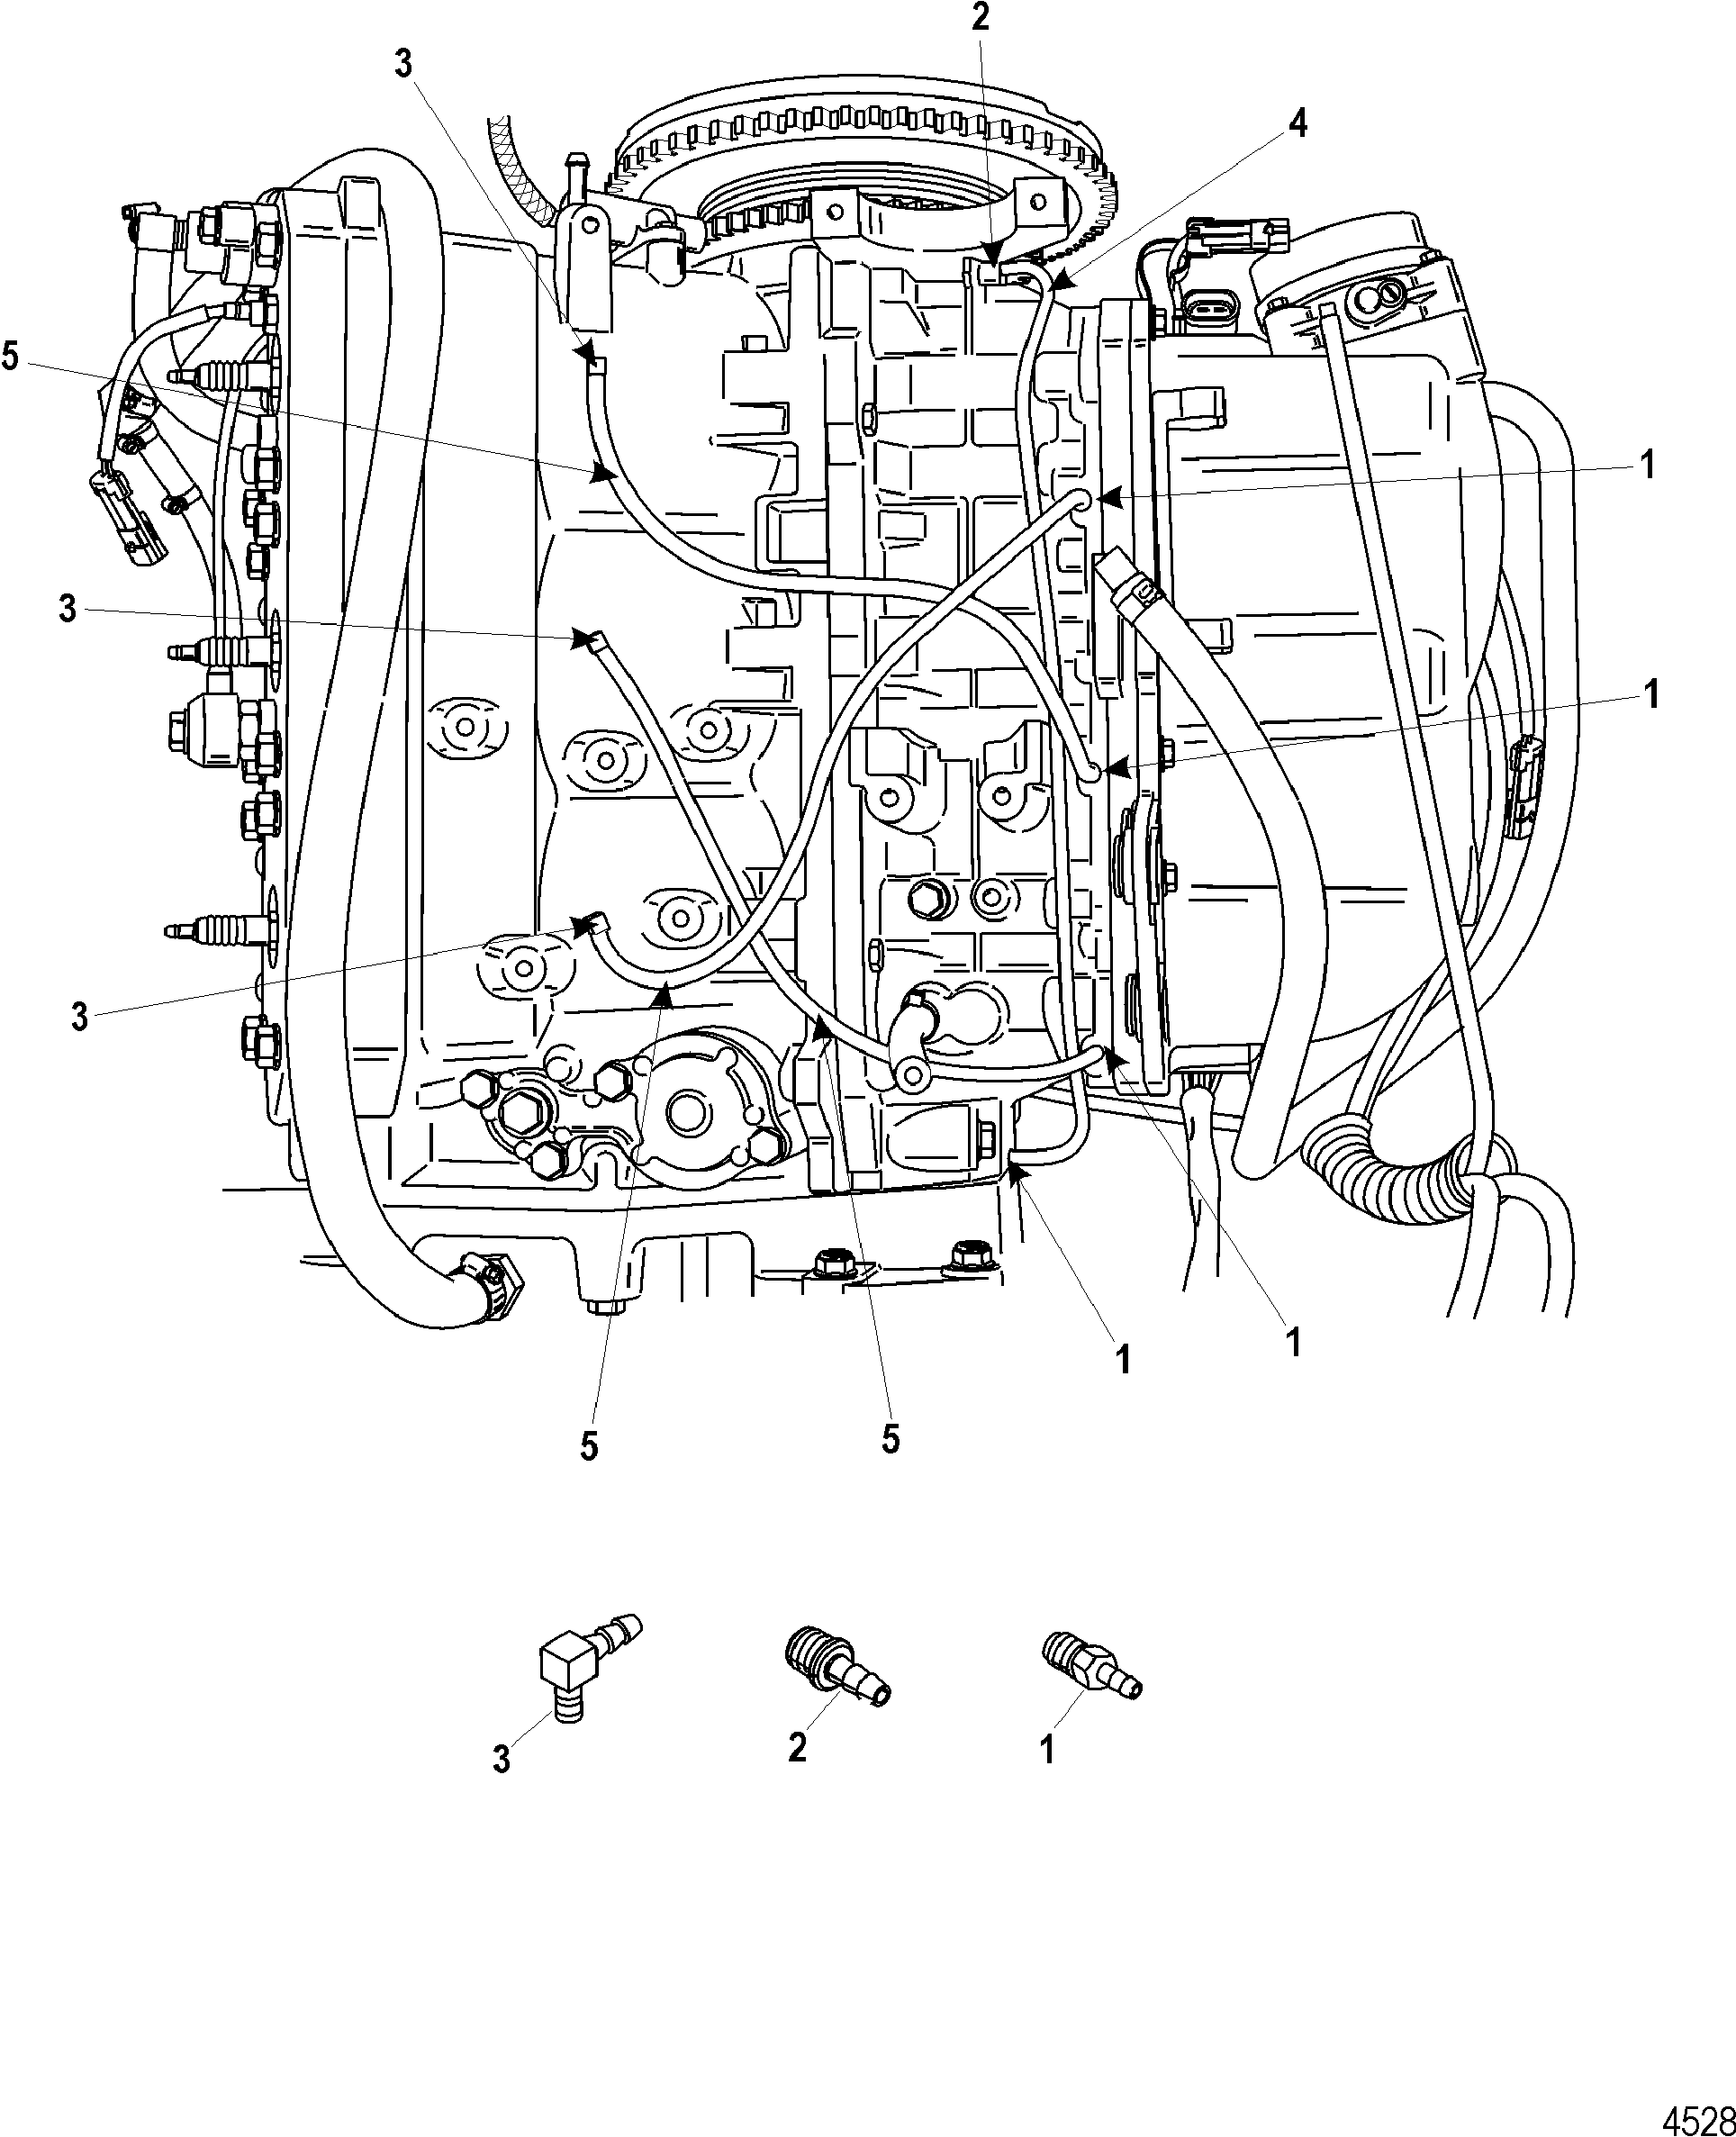 50 Hp Mercury Efi Outboard Wiring Diagram Html